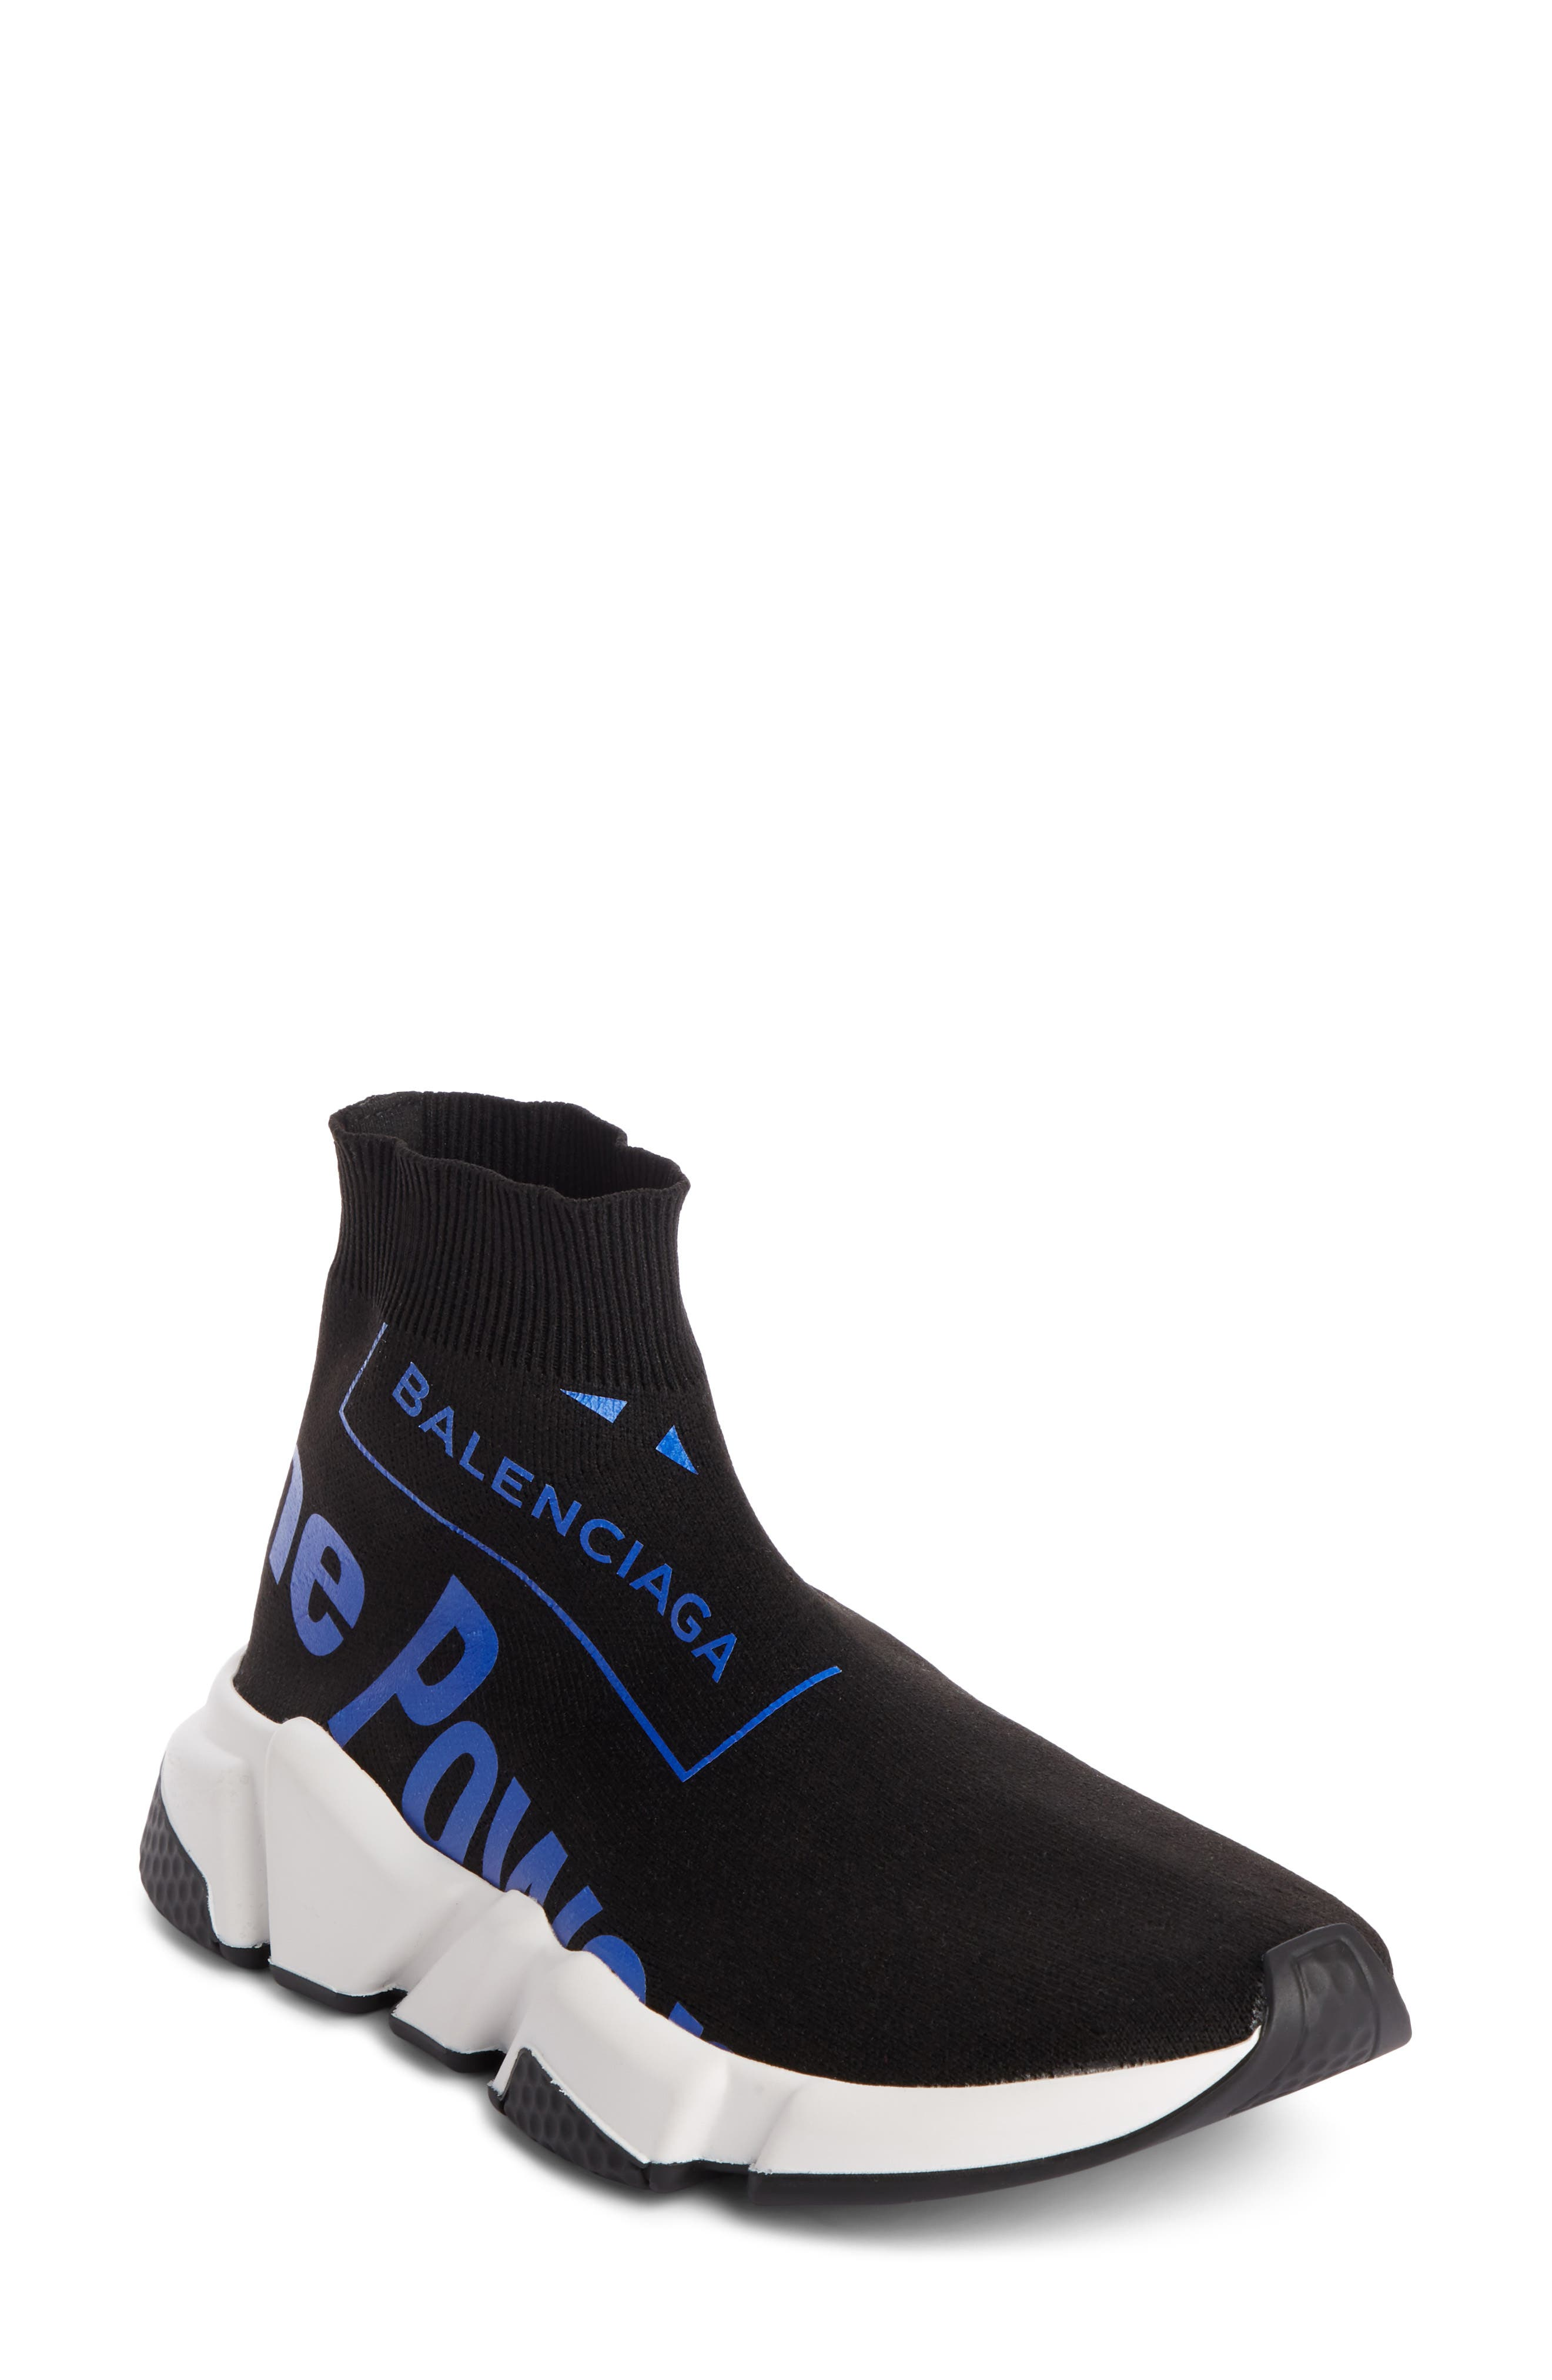 Dream Speed Trainer Sneaker,                         Main,                         color, BLACK/ BLUE